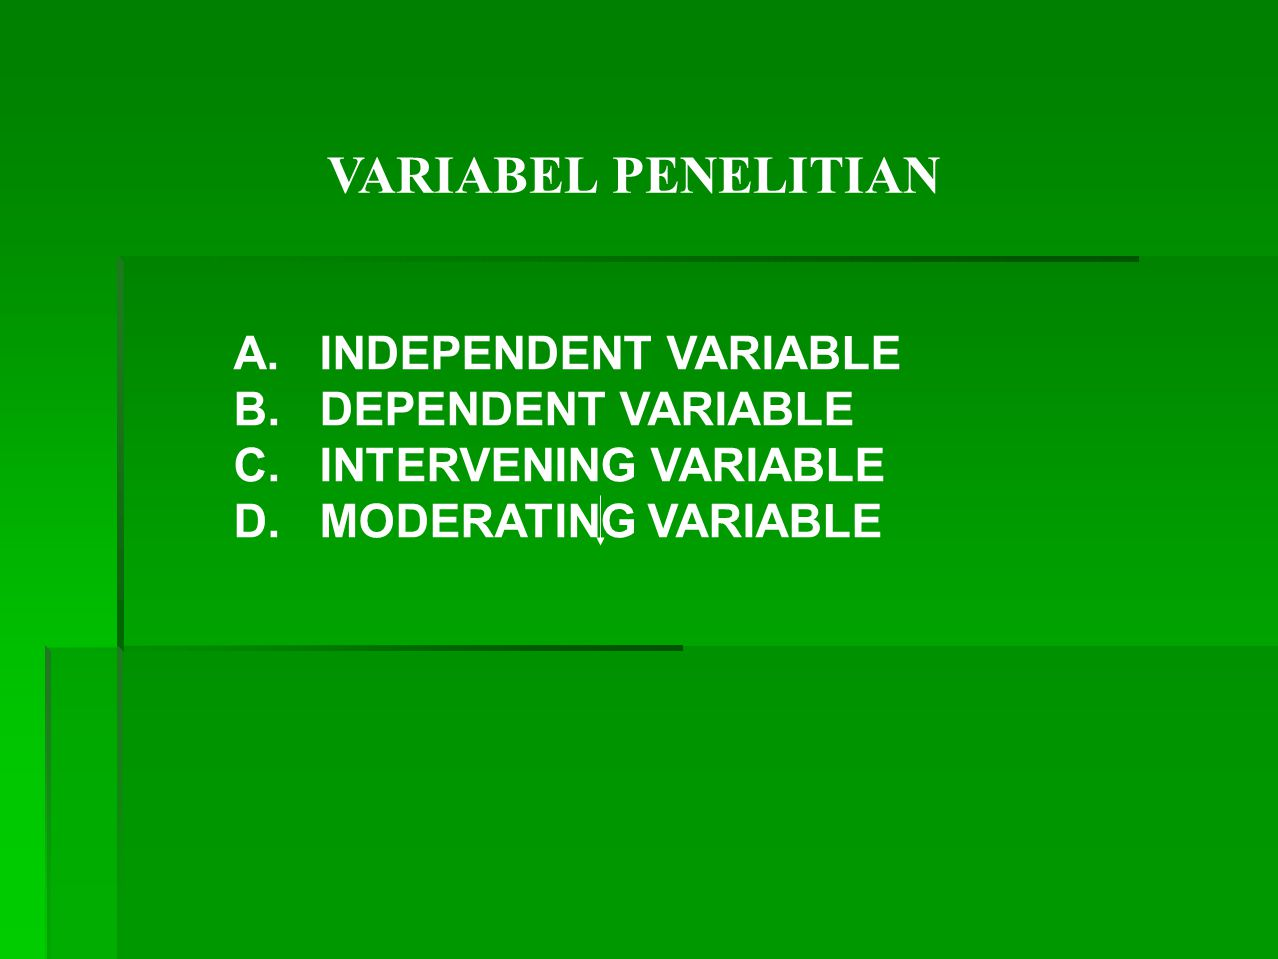 VARIABEL PENELITIAN A.INDEPENDENT VARIABLE B. DEPENDENT VARIABLE C.